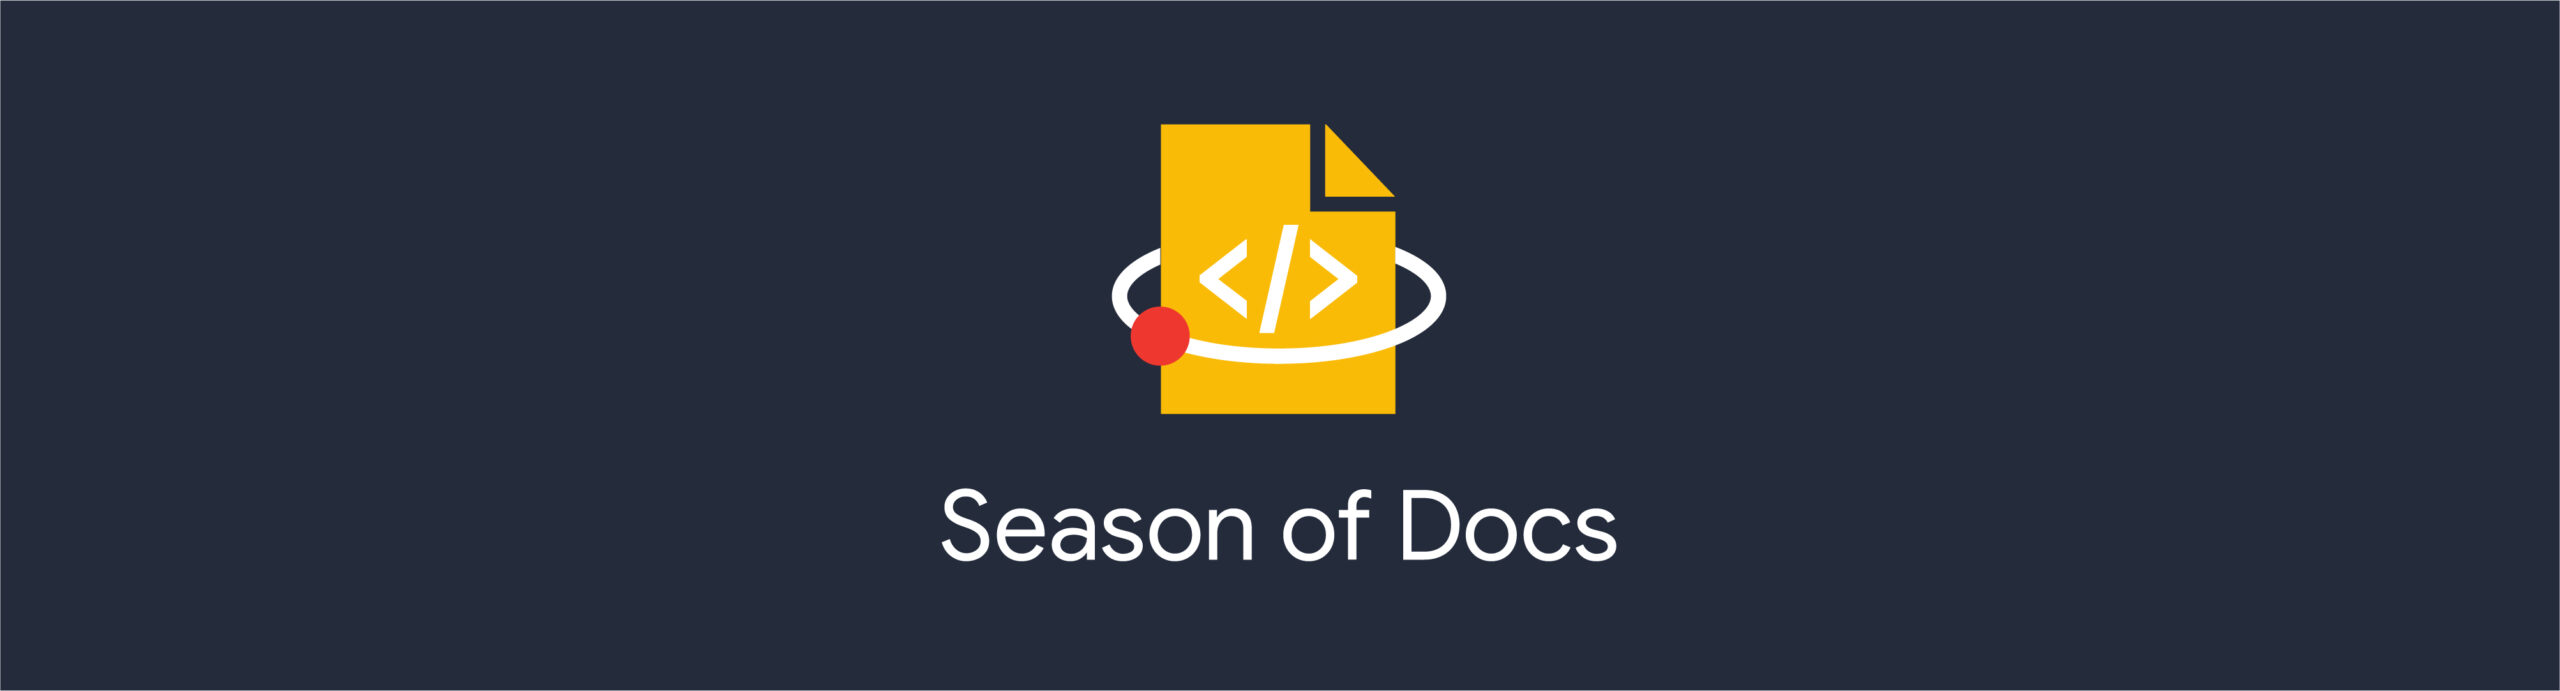 GNOME to apply for Season of Docs 2021